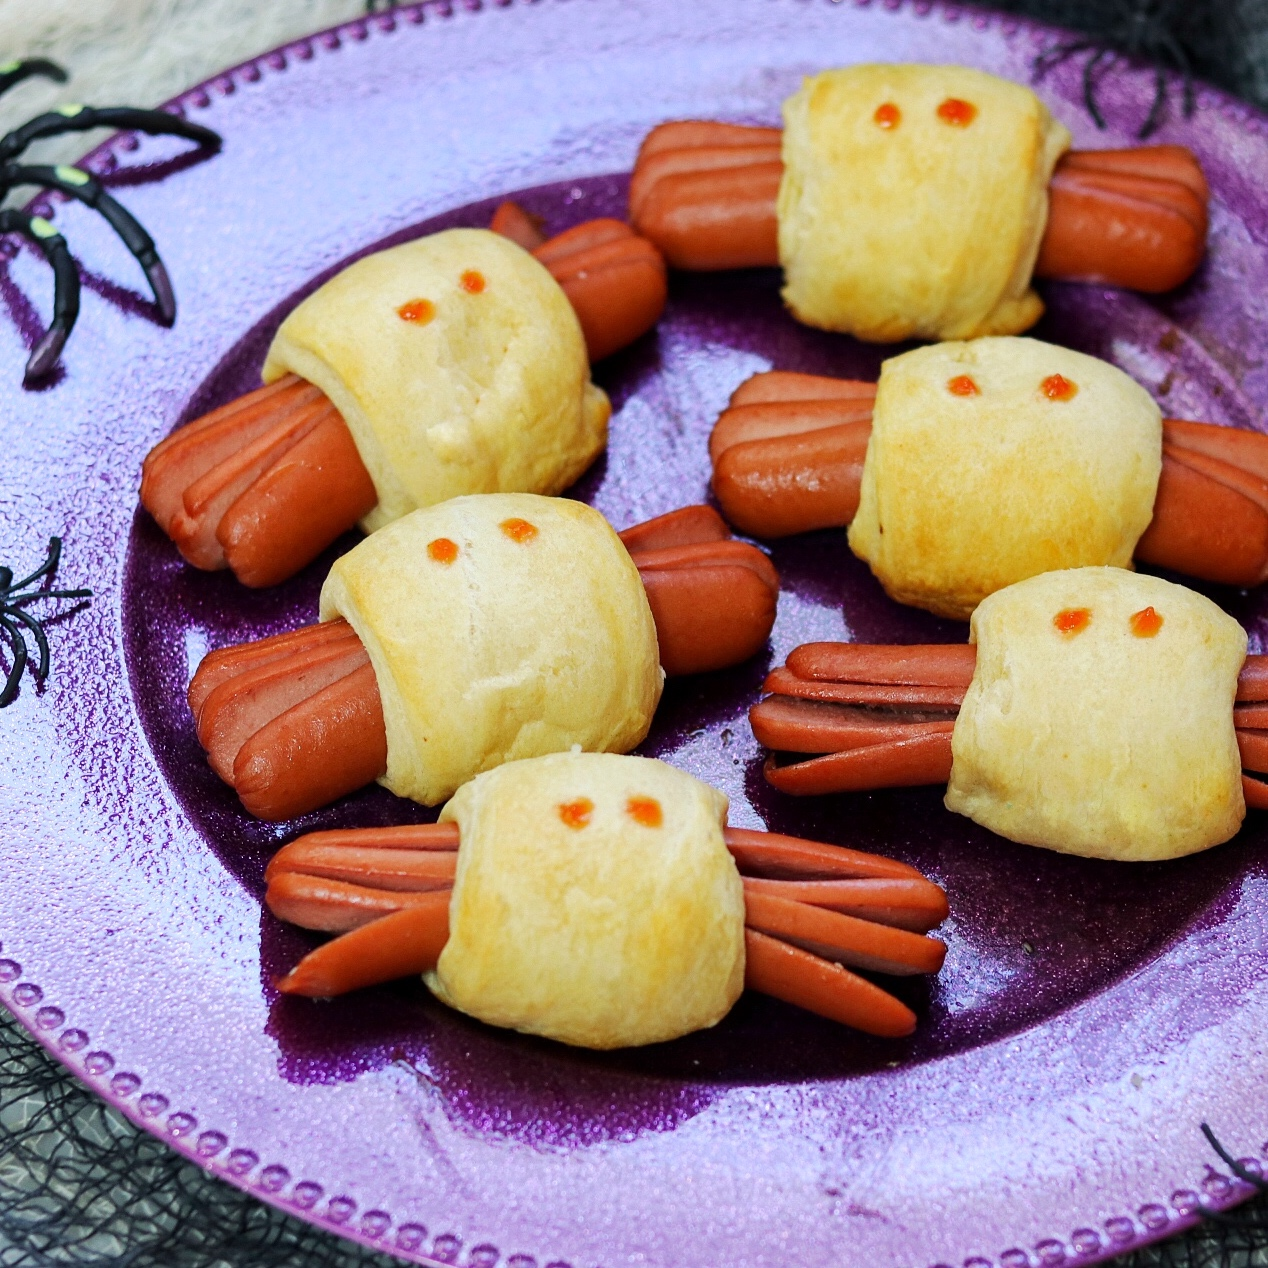 Spooky Spider Halloween Hot Dogs on a purple plate with plastic spider decorations